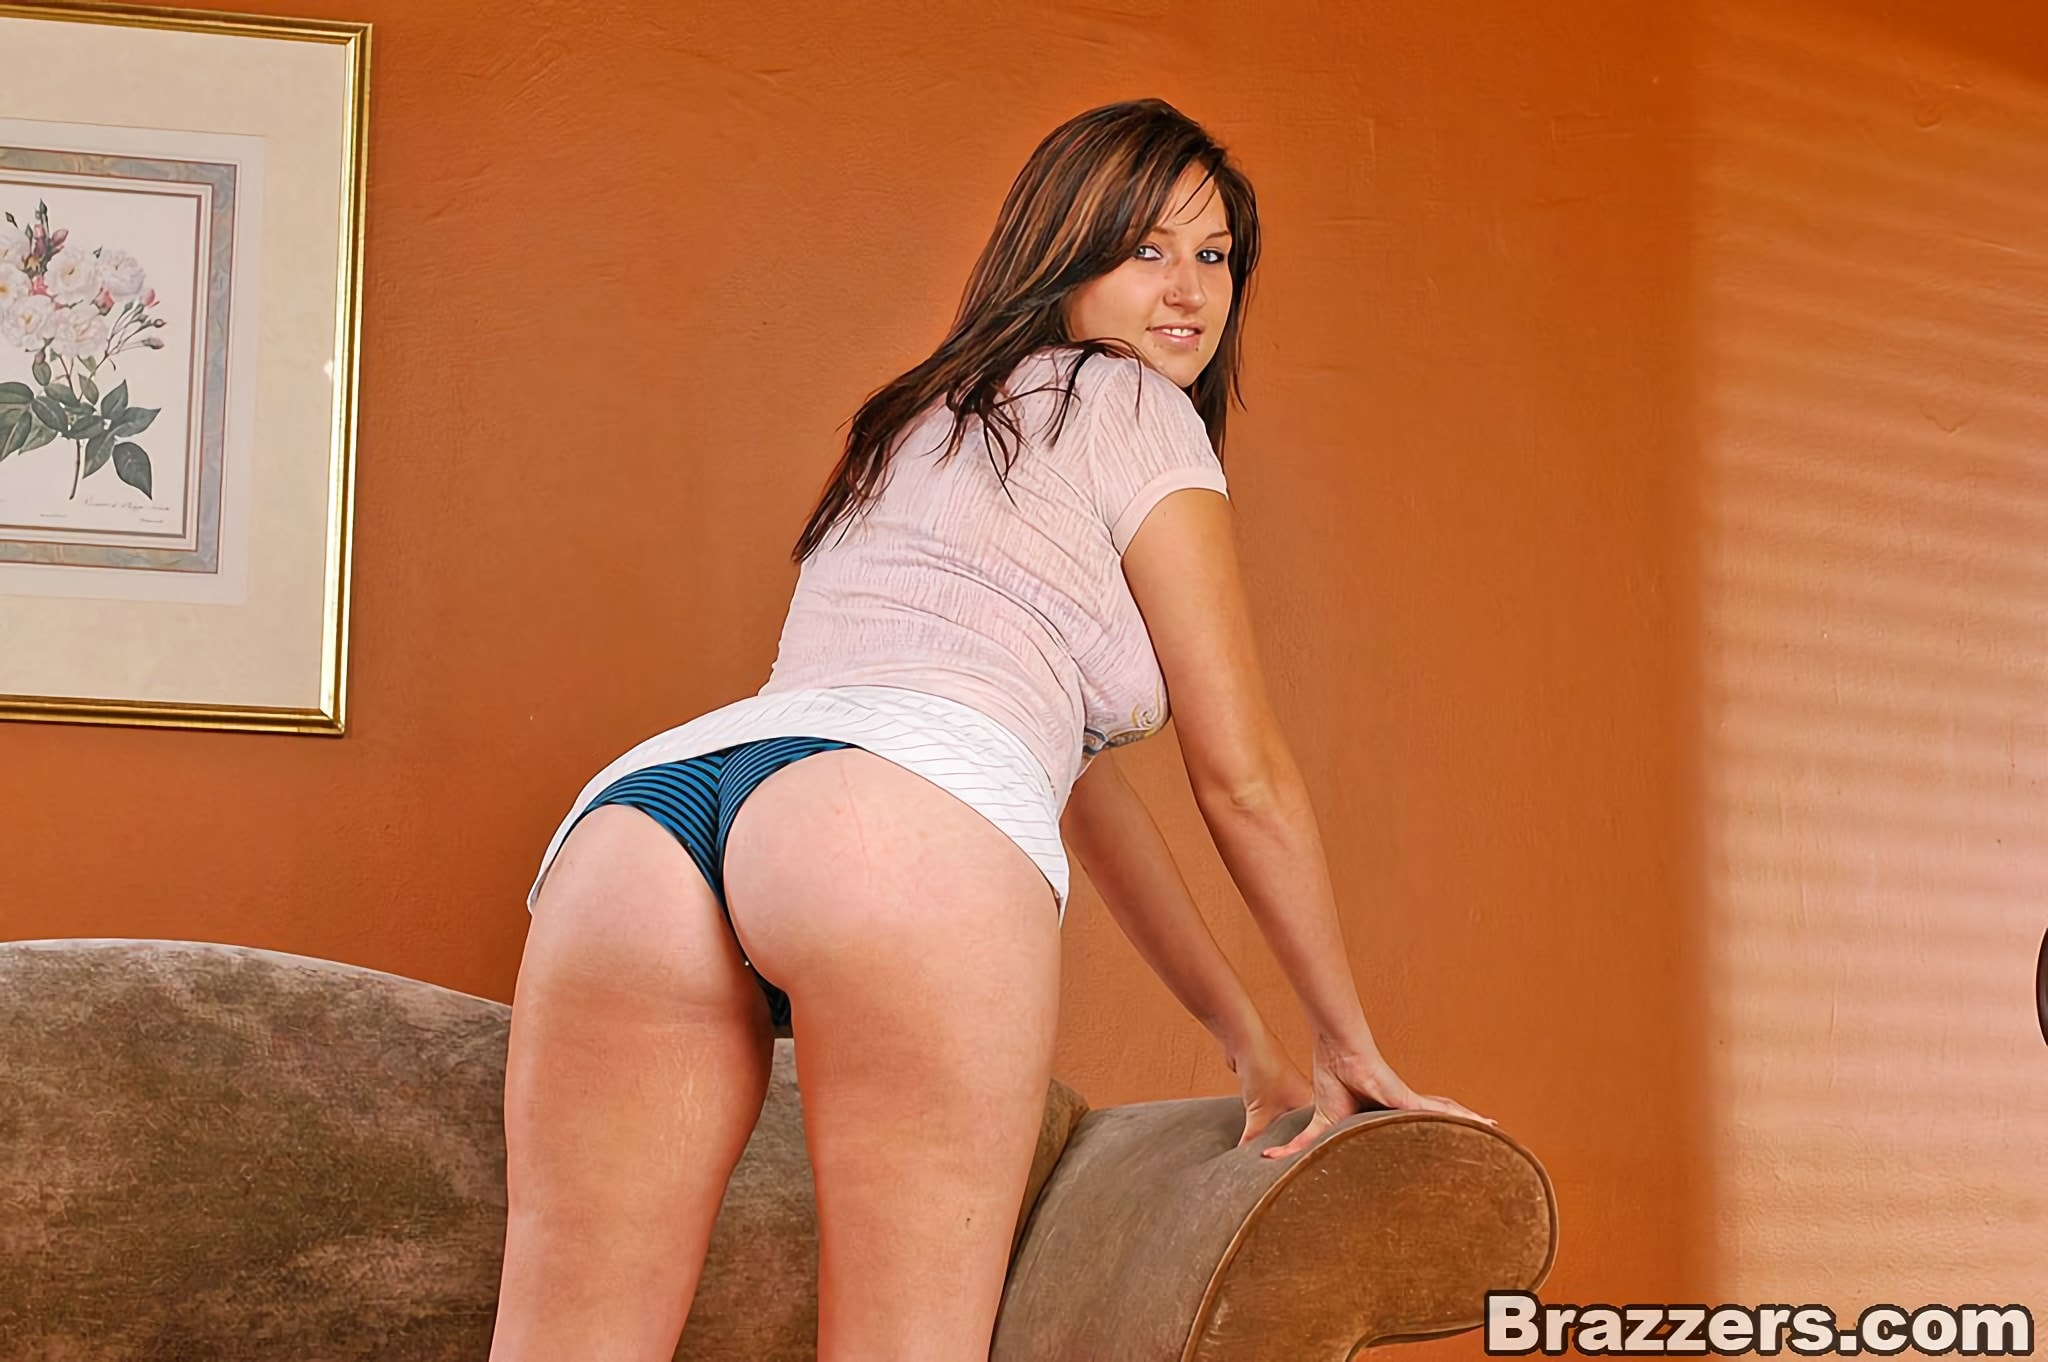 Brazzers 'Teenie With A Booty' starring Isis (Photo 2)